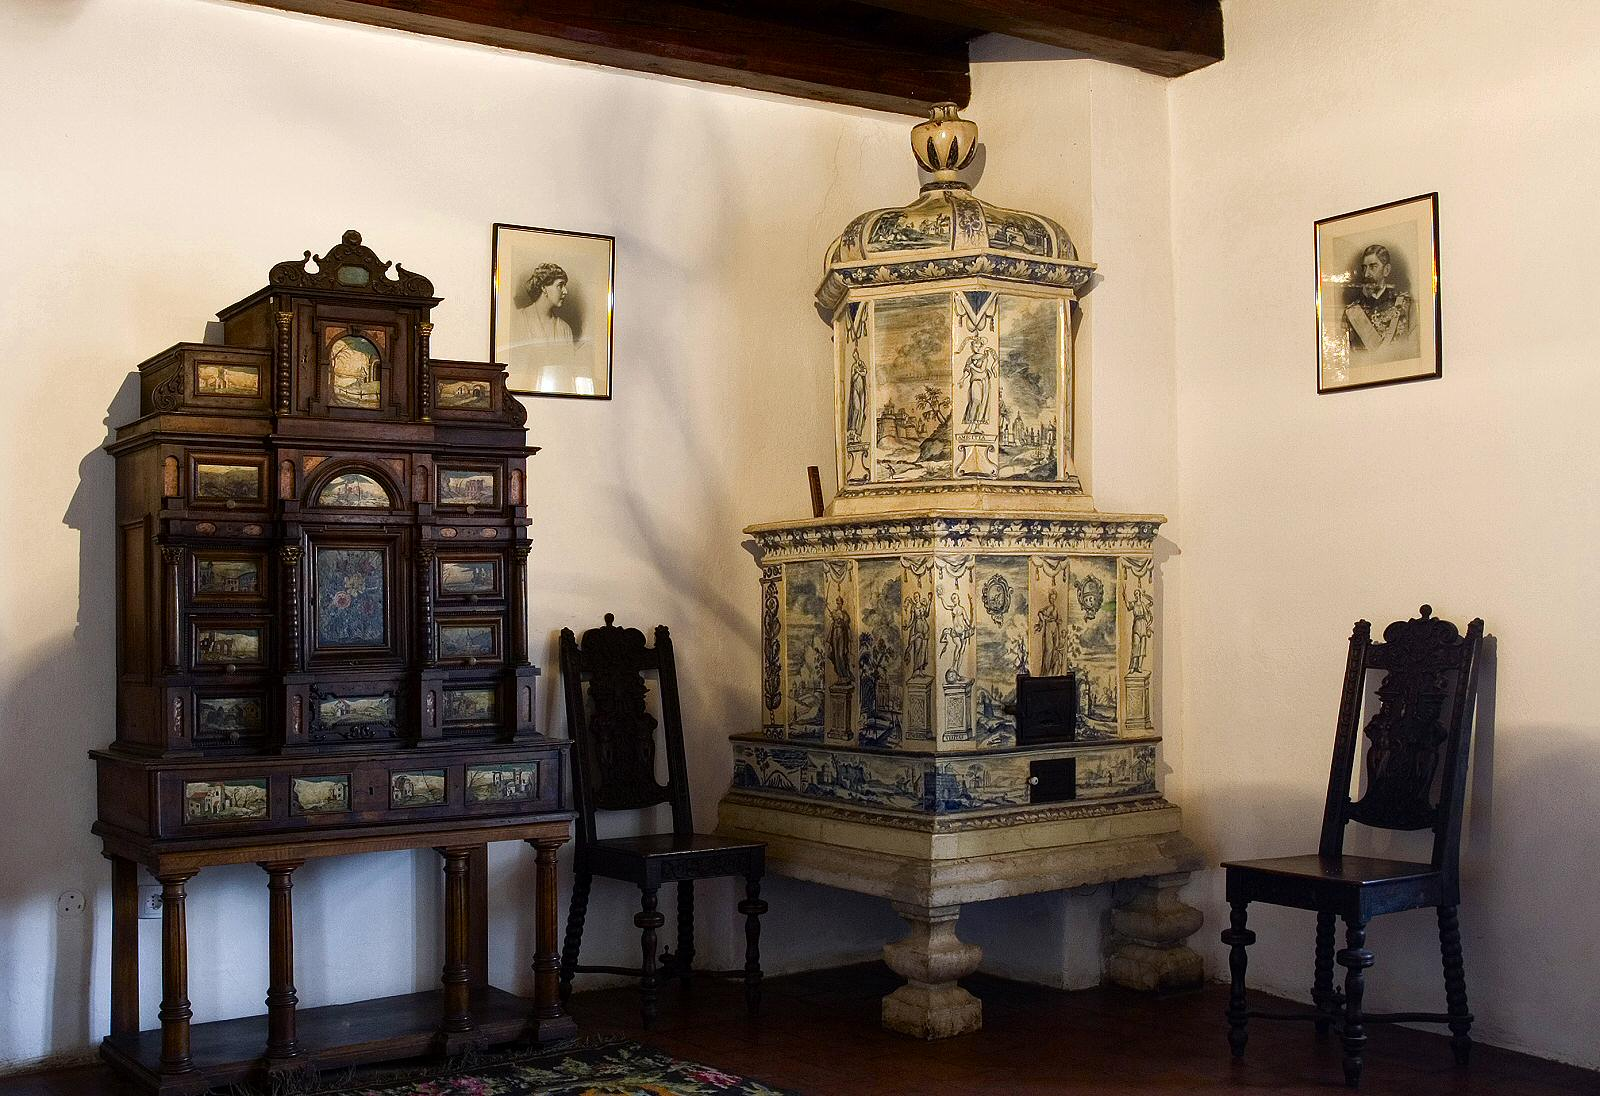 This is one of the corners in King Ferdinand's bedroom, featuring the original furniture